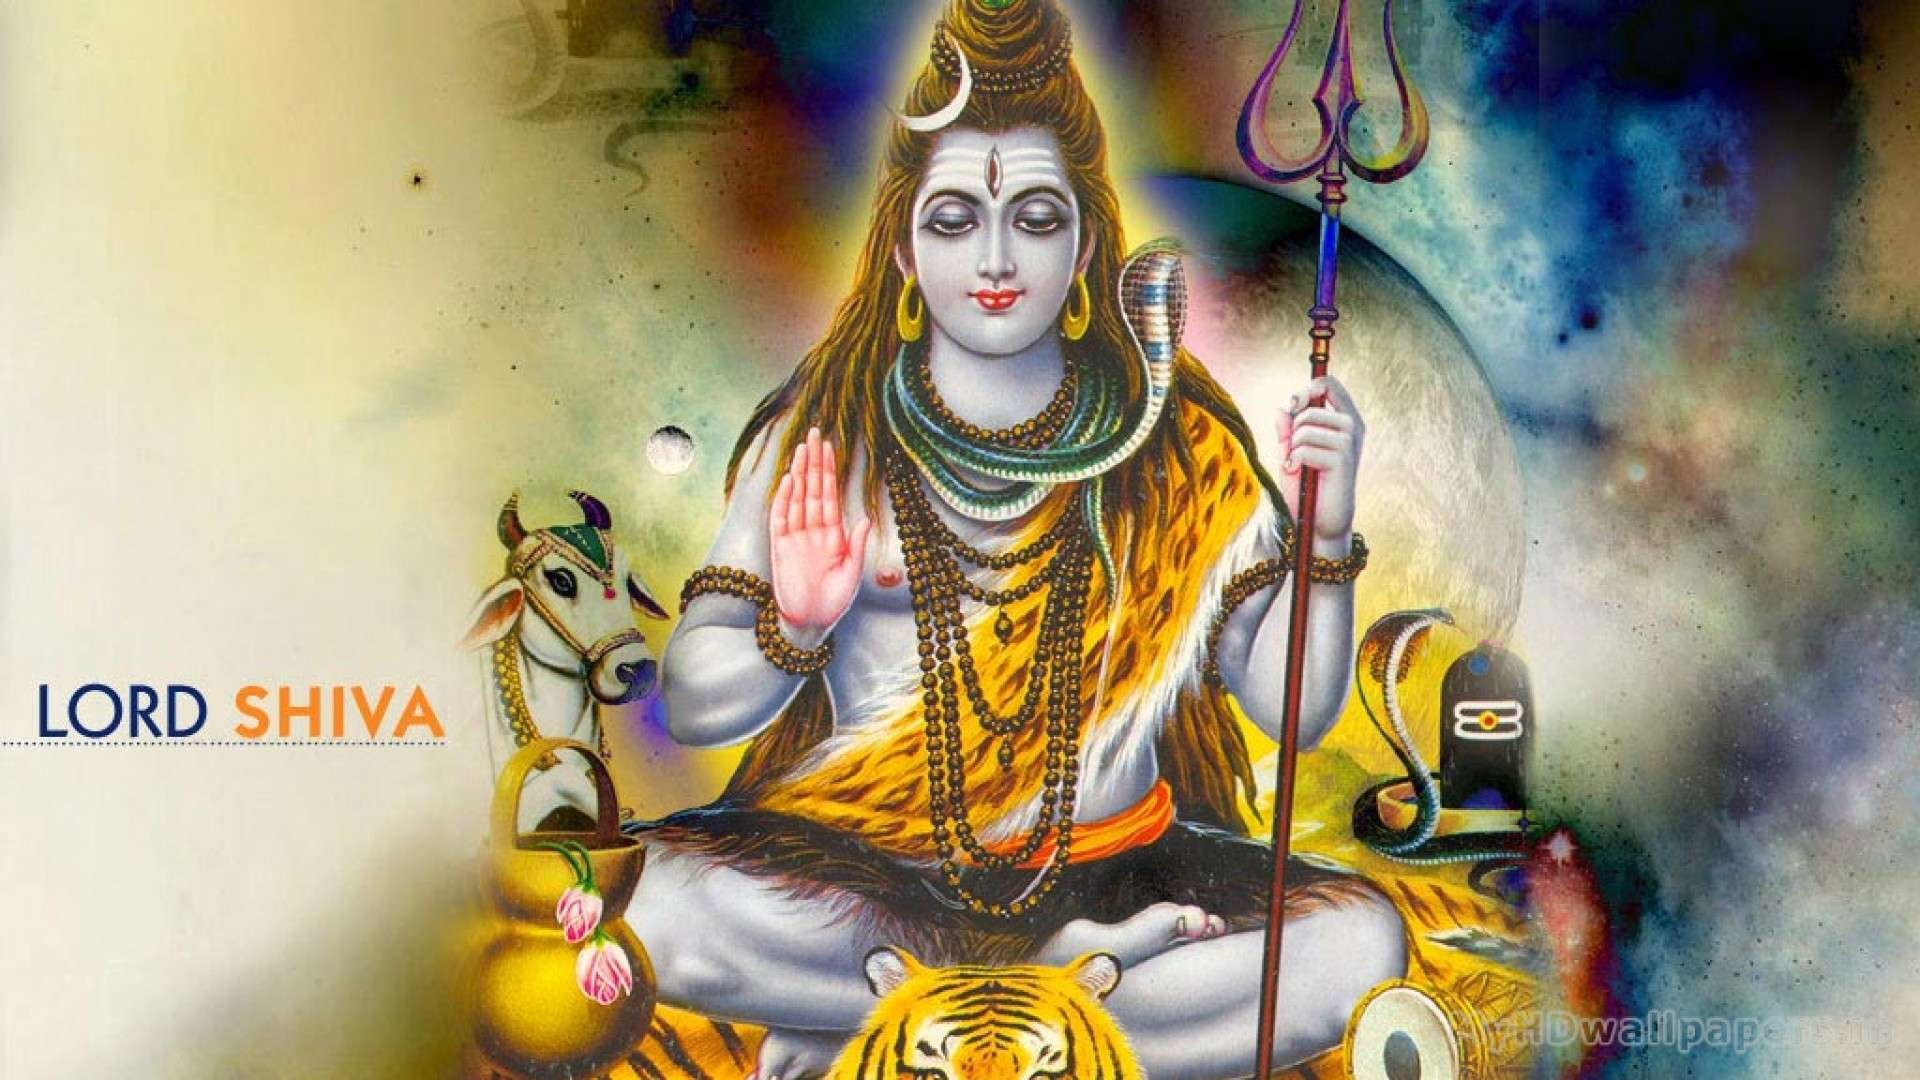 Lord Shiva Desktop Wallpapers Hd: Shiva Lord Wallpapers Desktop : Hd Wallpapers